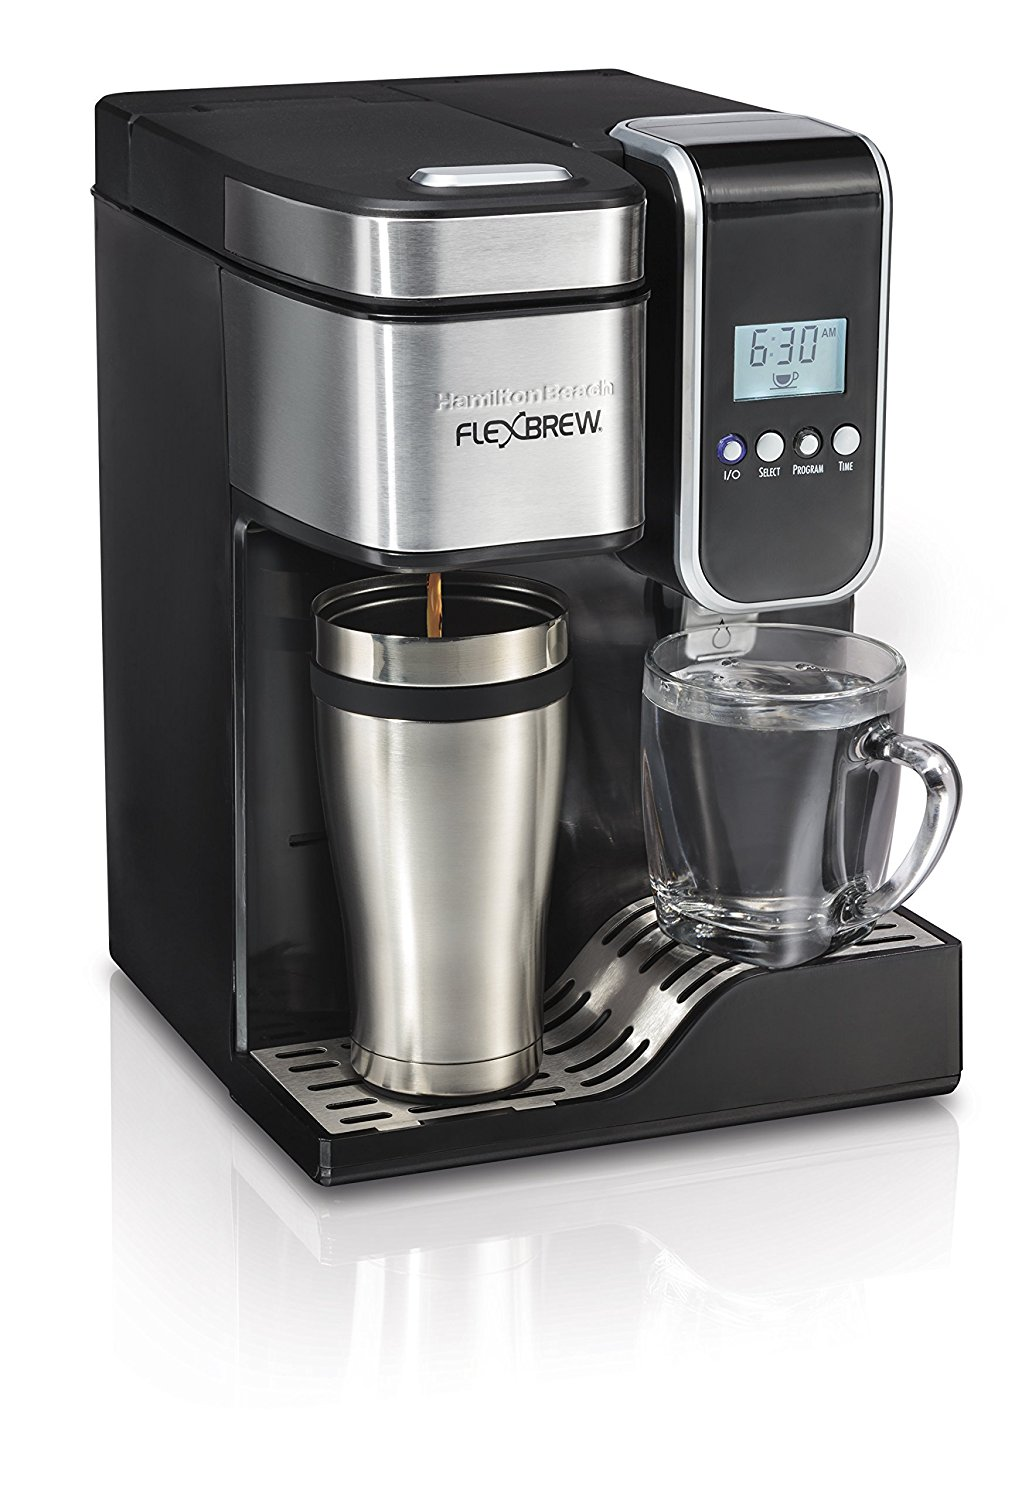 Good Coffee Makers Home Use : Top 10 Best Coffee Maker For Home and Office - BestReviewy.com